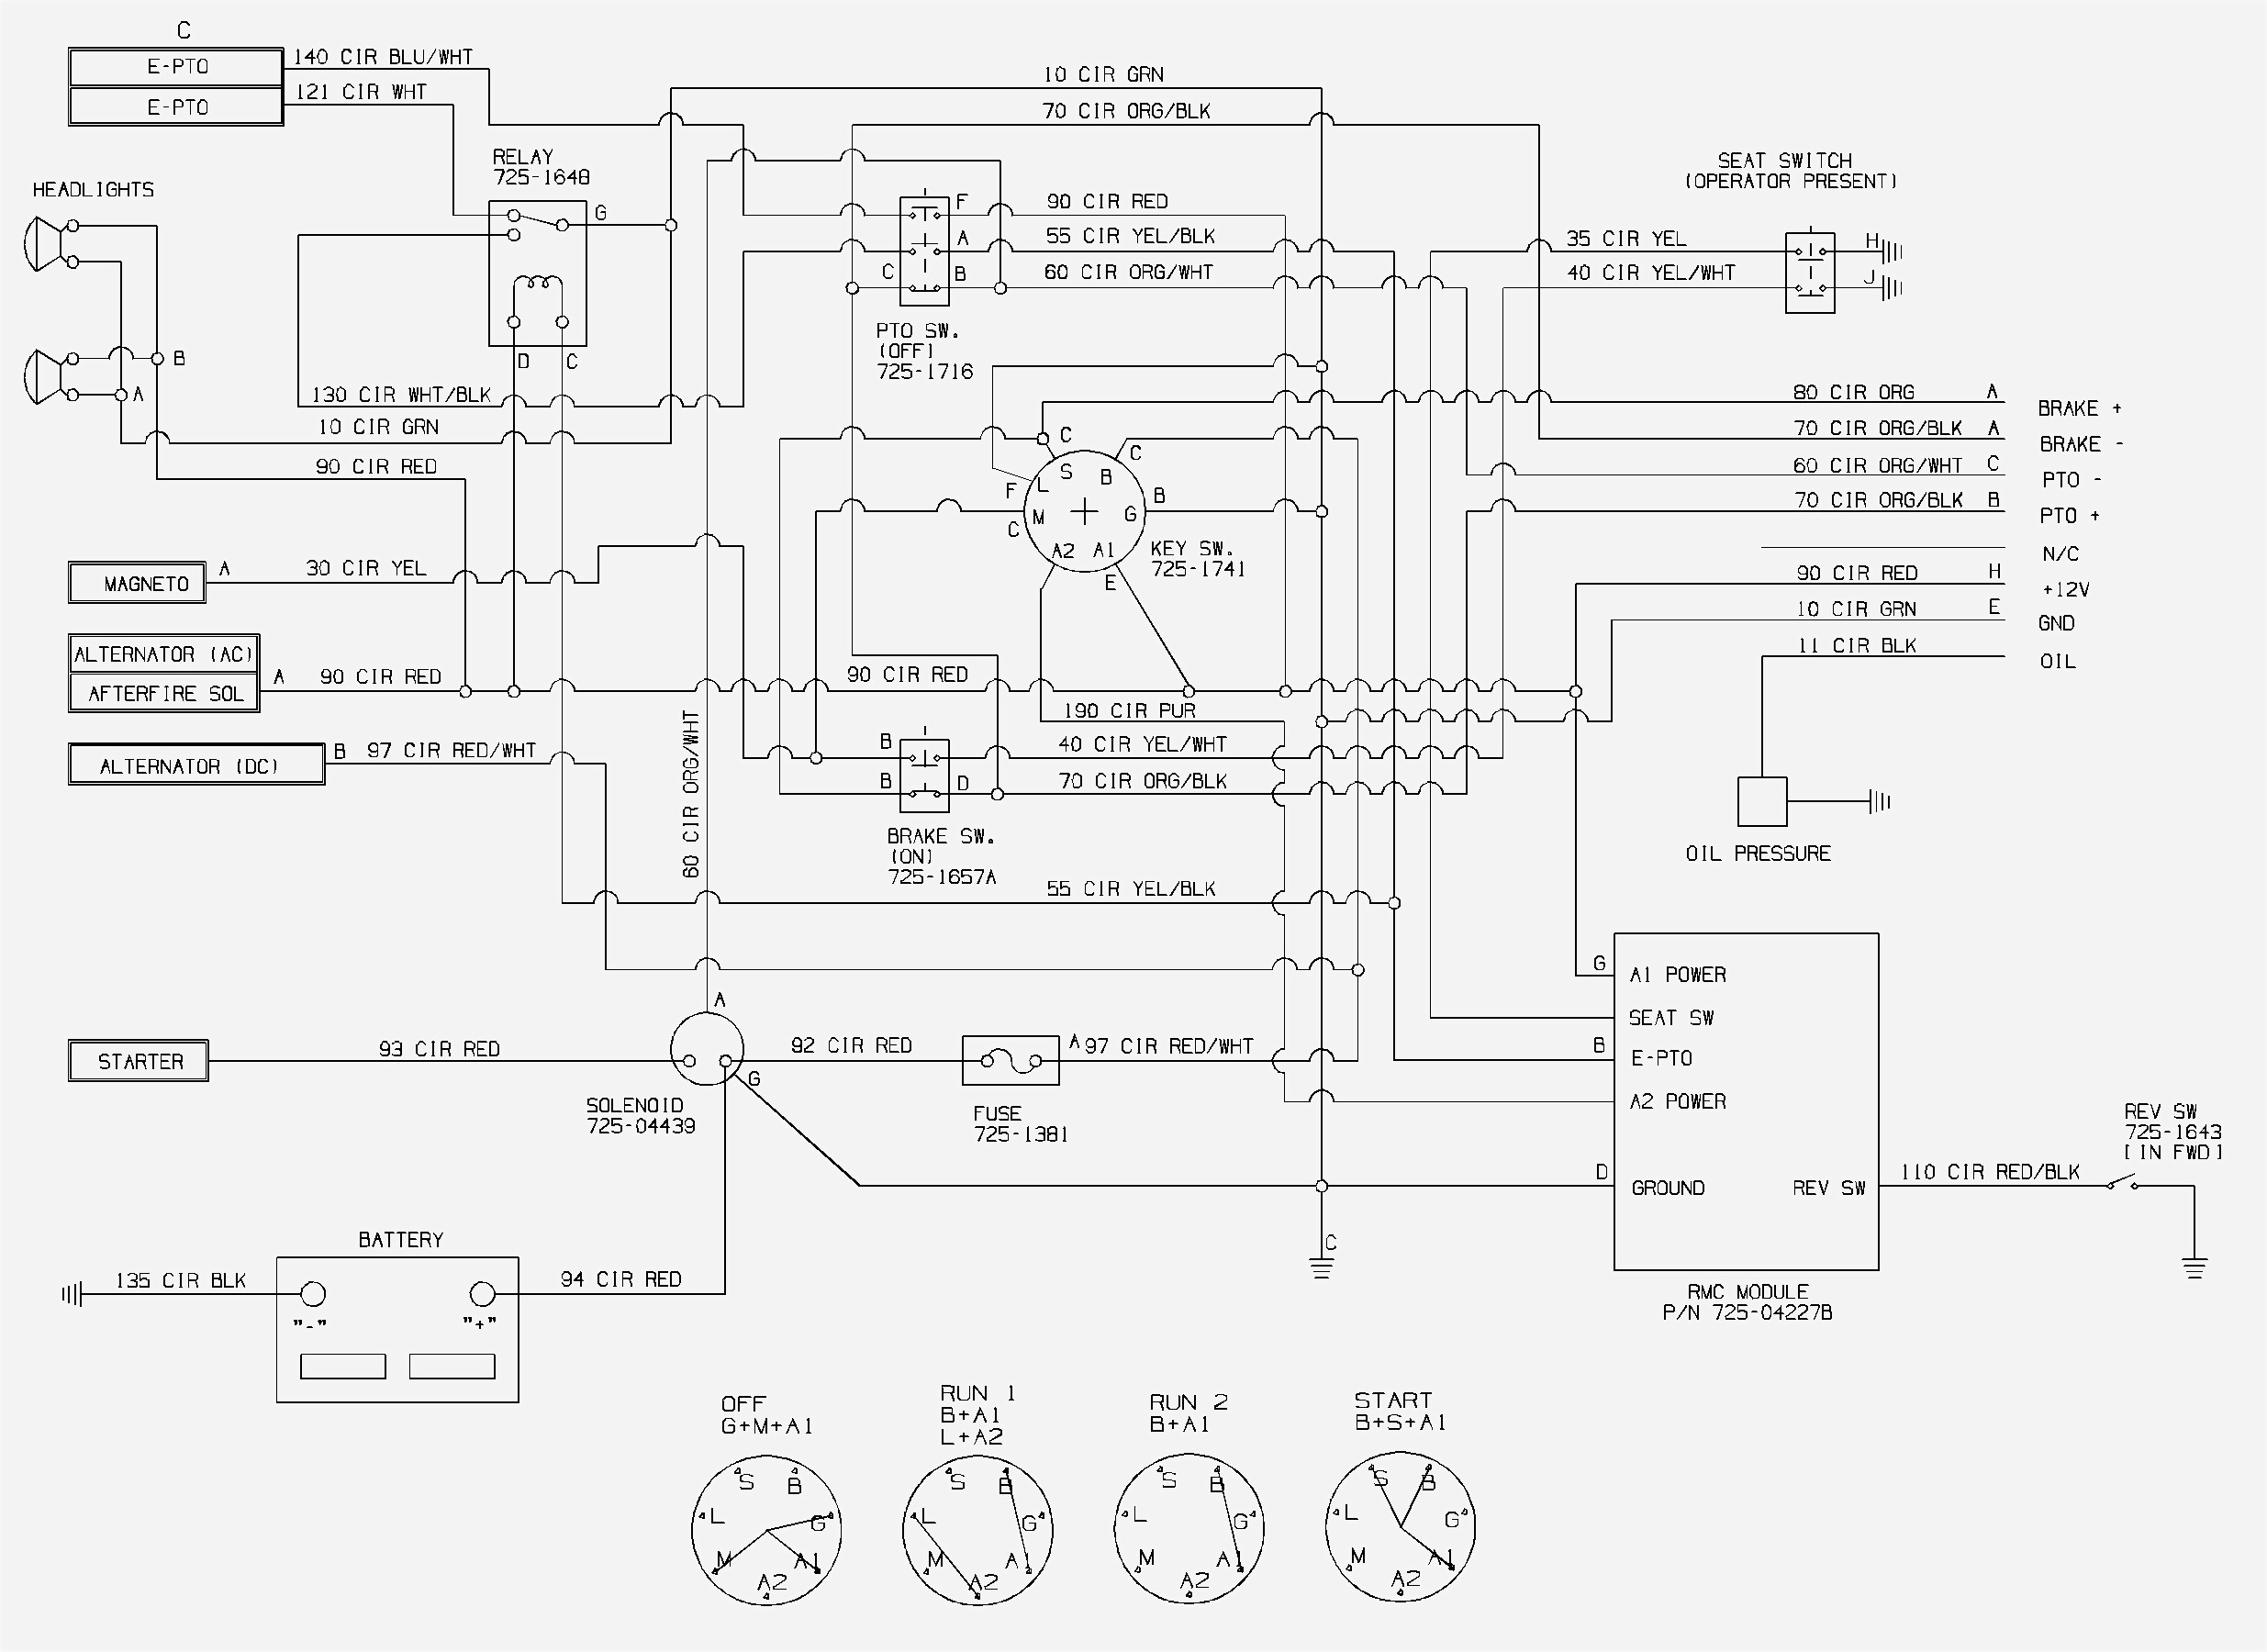 DIAGRAM] Ltx 1045 Cub Cadet Wiring Diagram FULL Version HD Quality Wiring  Diagram - KIA4550WIRING.CONCESSIONARIABELOGISENIGALLIA.ITconcessionariabelogisenigallia.it